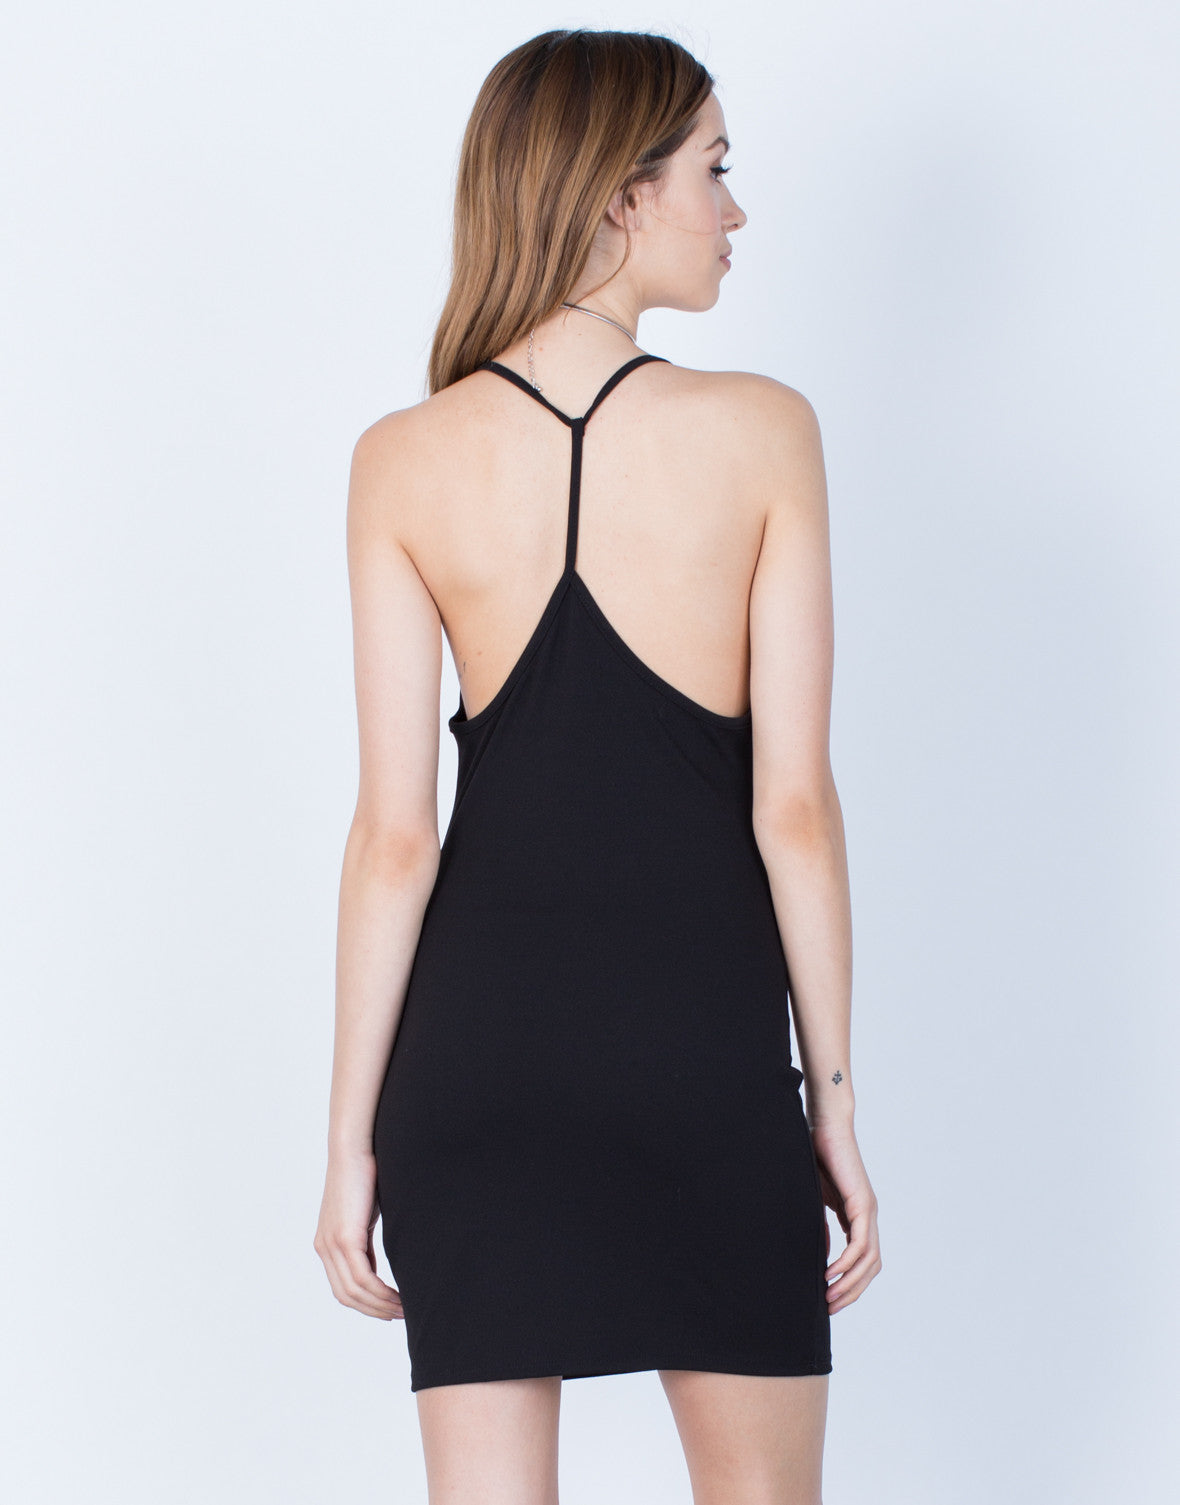 Back View of Little Strappy Party Dress